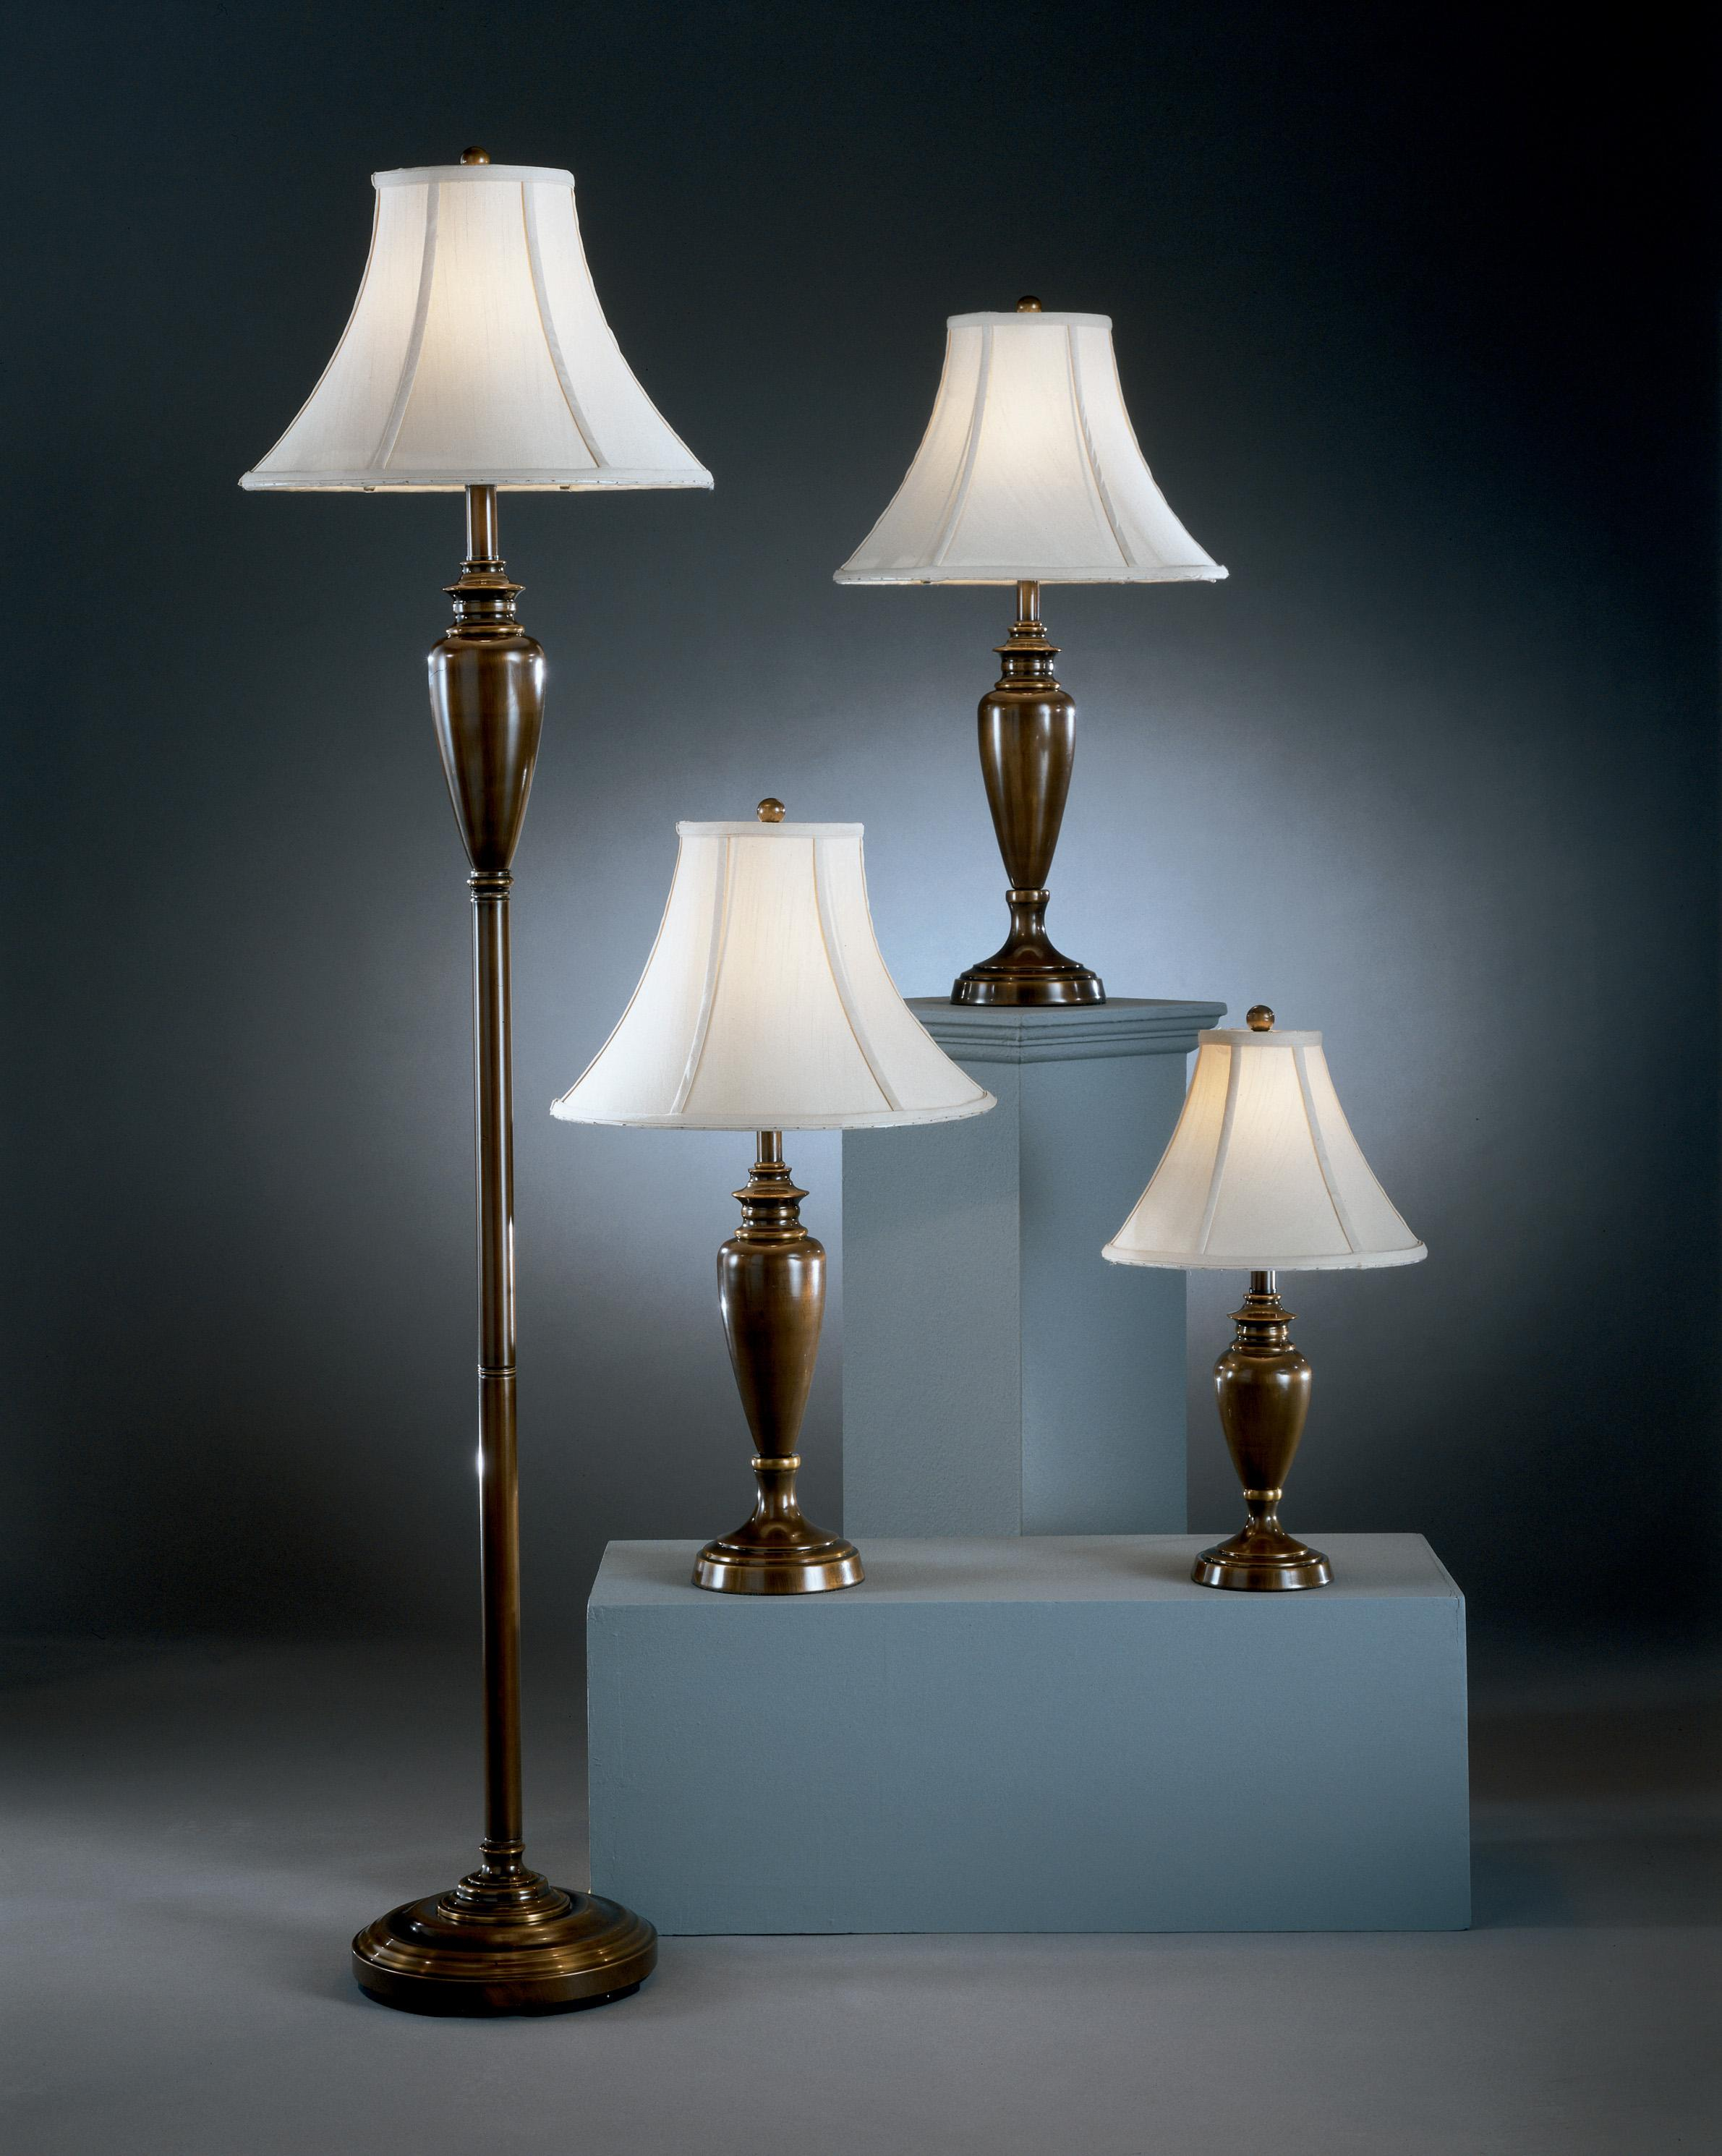 Signature Design by Ashley Lamps - Traditional Classics Caron Group - Item Number: L603186